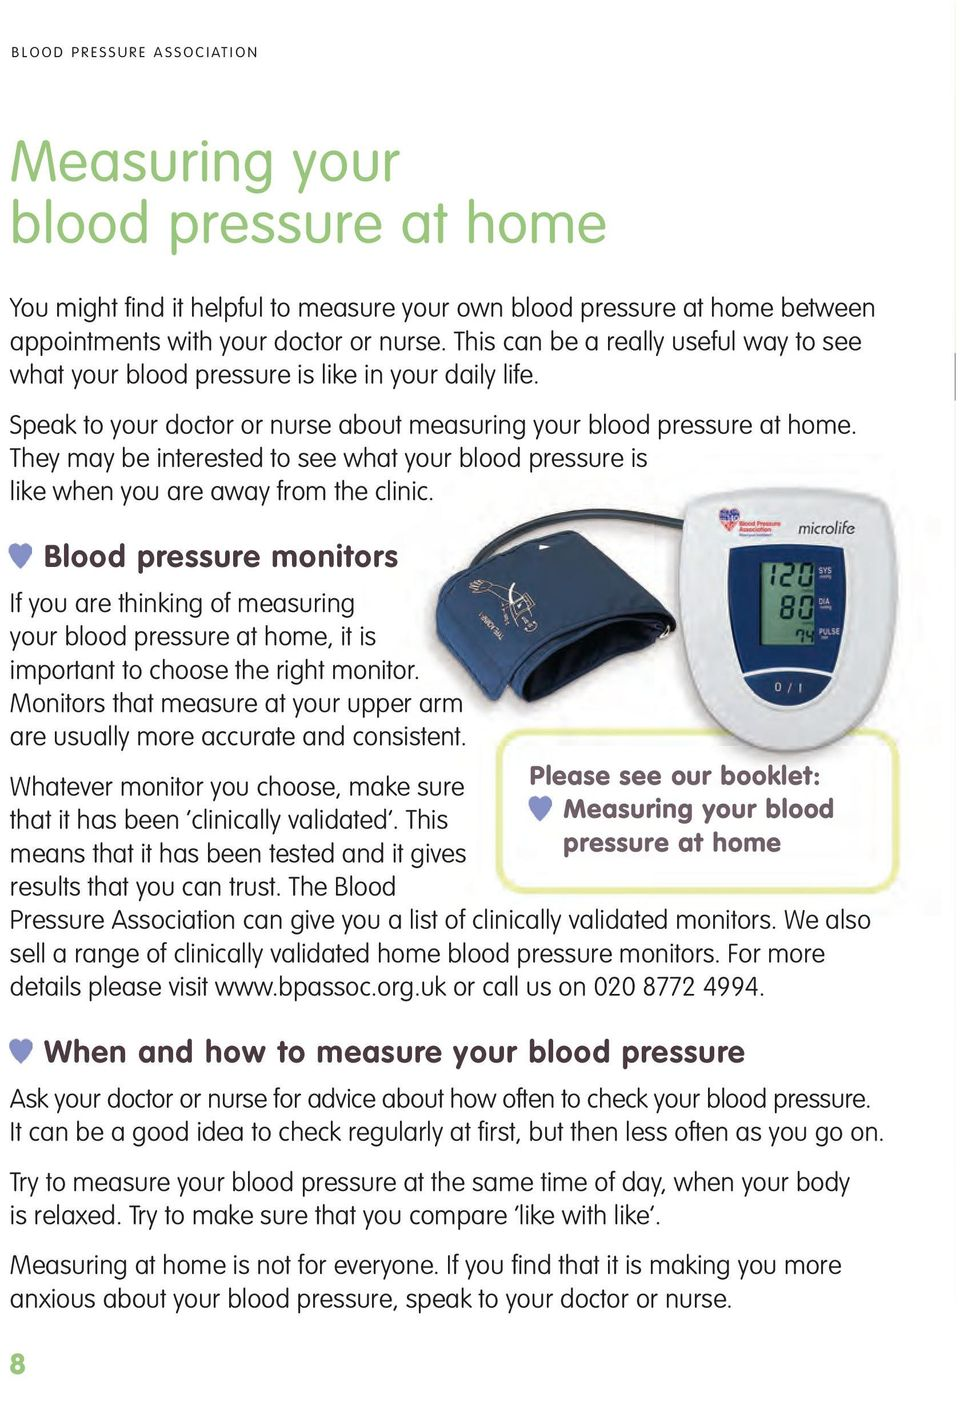 They may be interested to see what your blood pressure is like when you are away from the clinic.